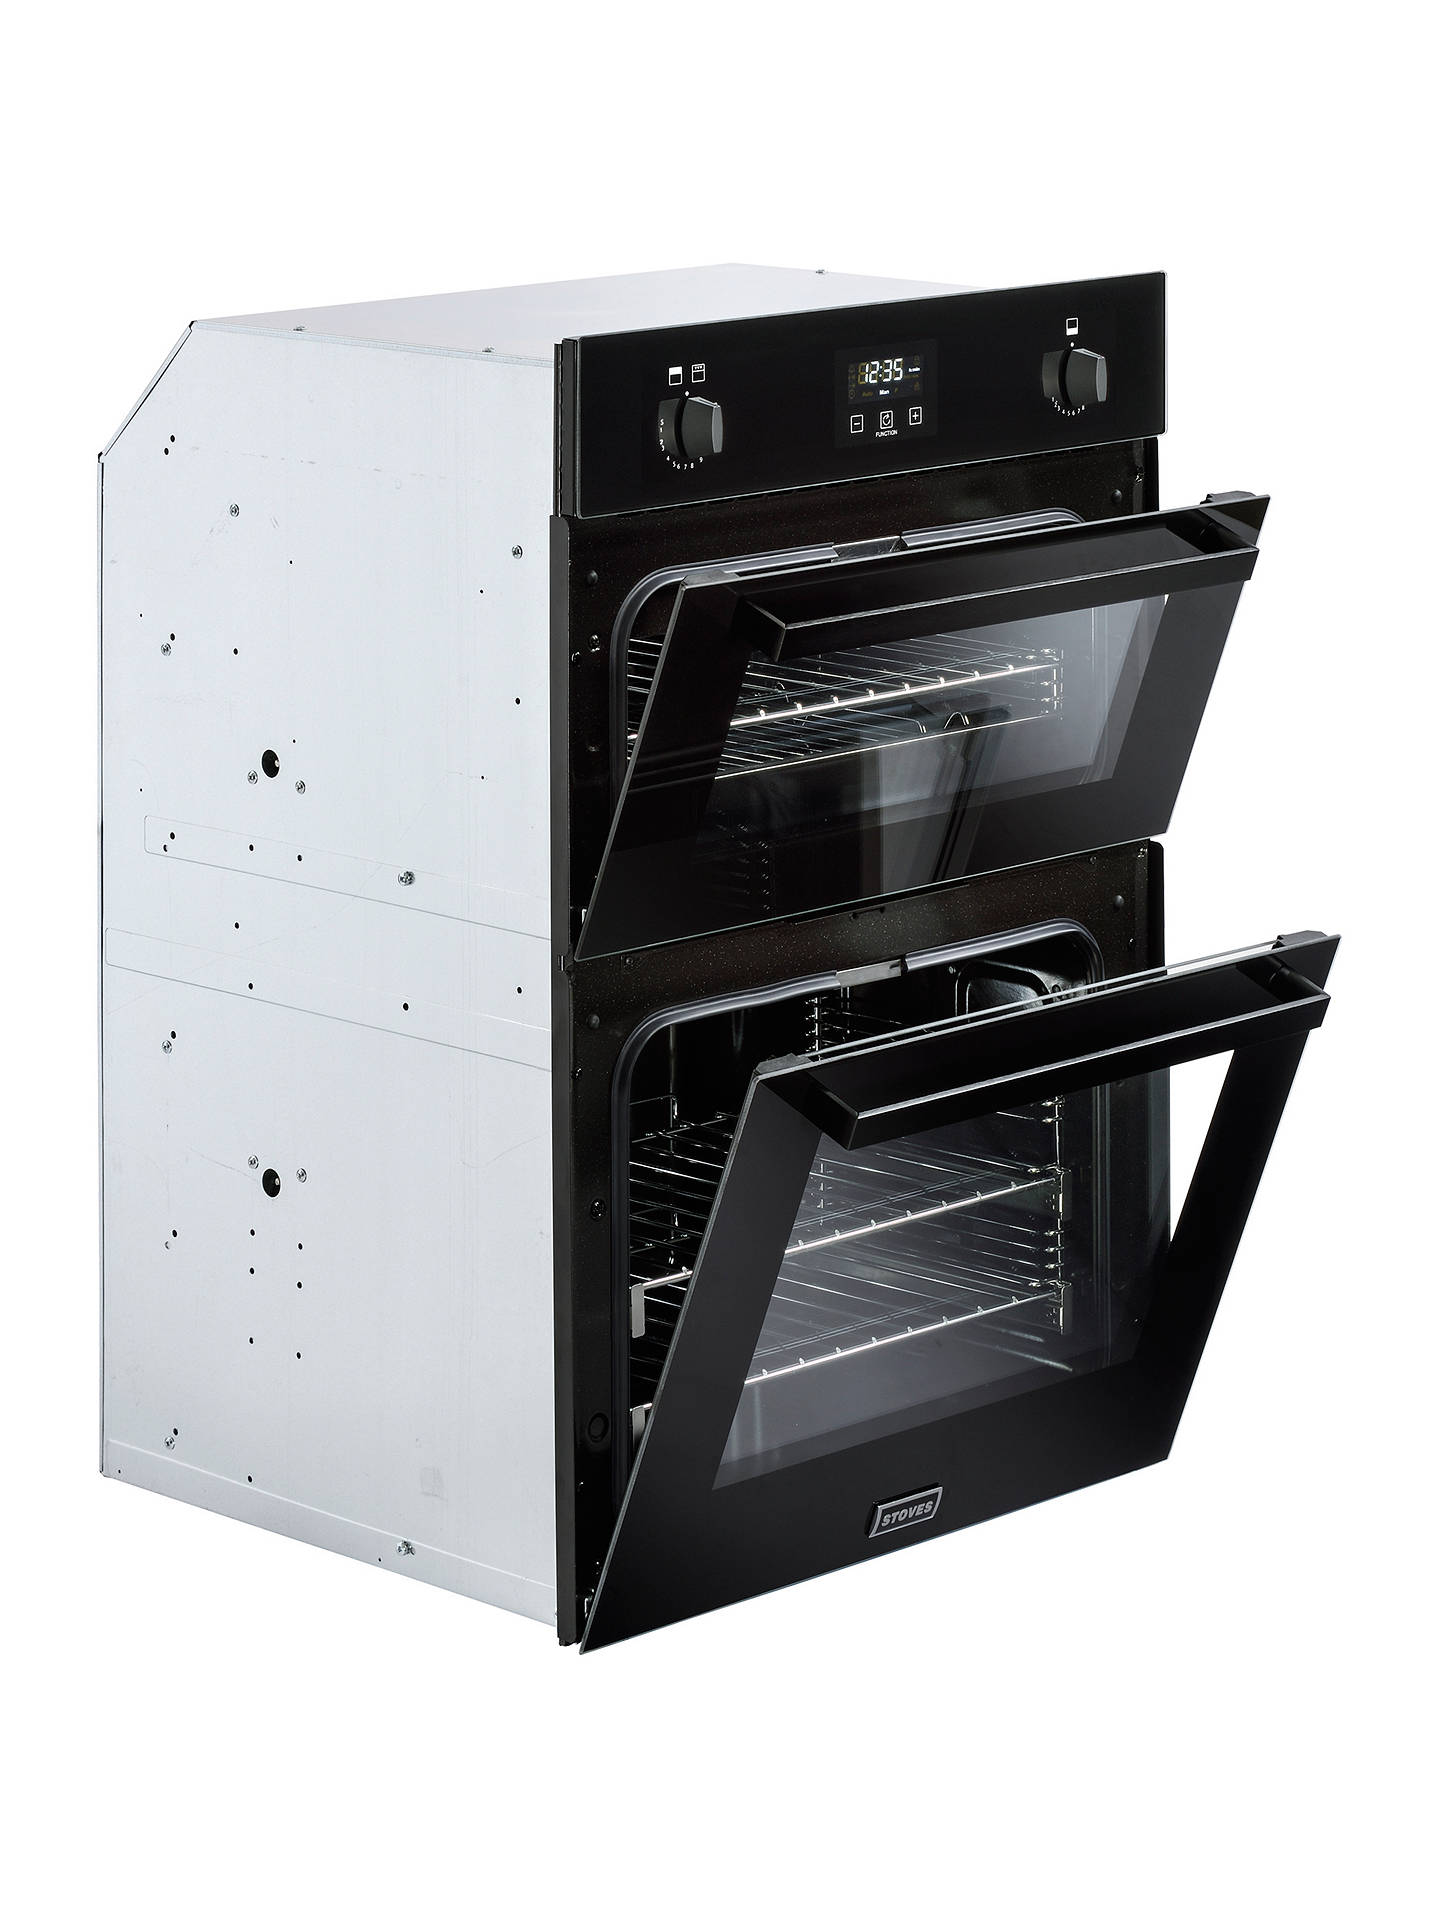 stoves stbi900g built in double gas oven at john lewis. Black Bedroom Furniture Sets. Home Design Ideas